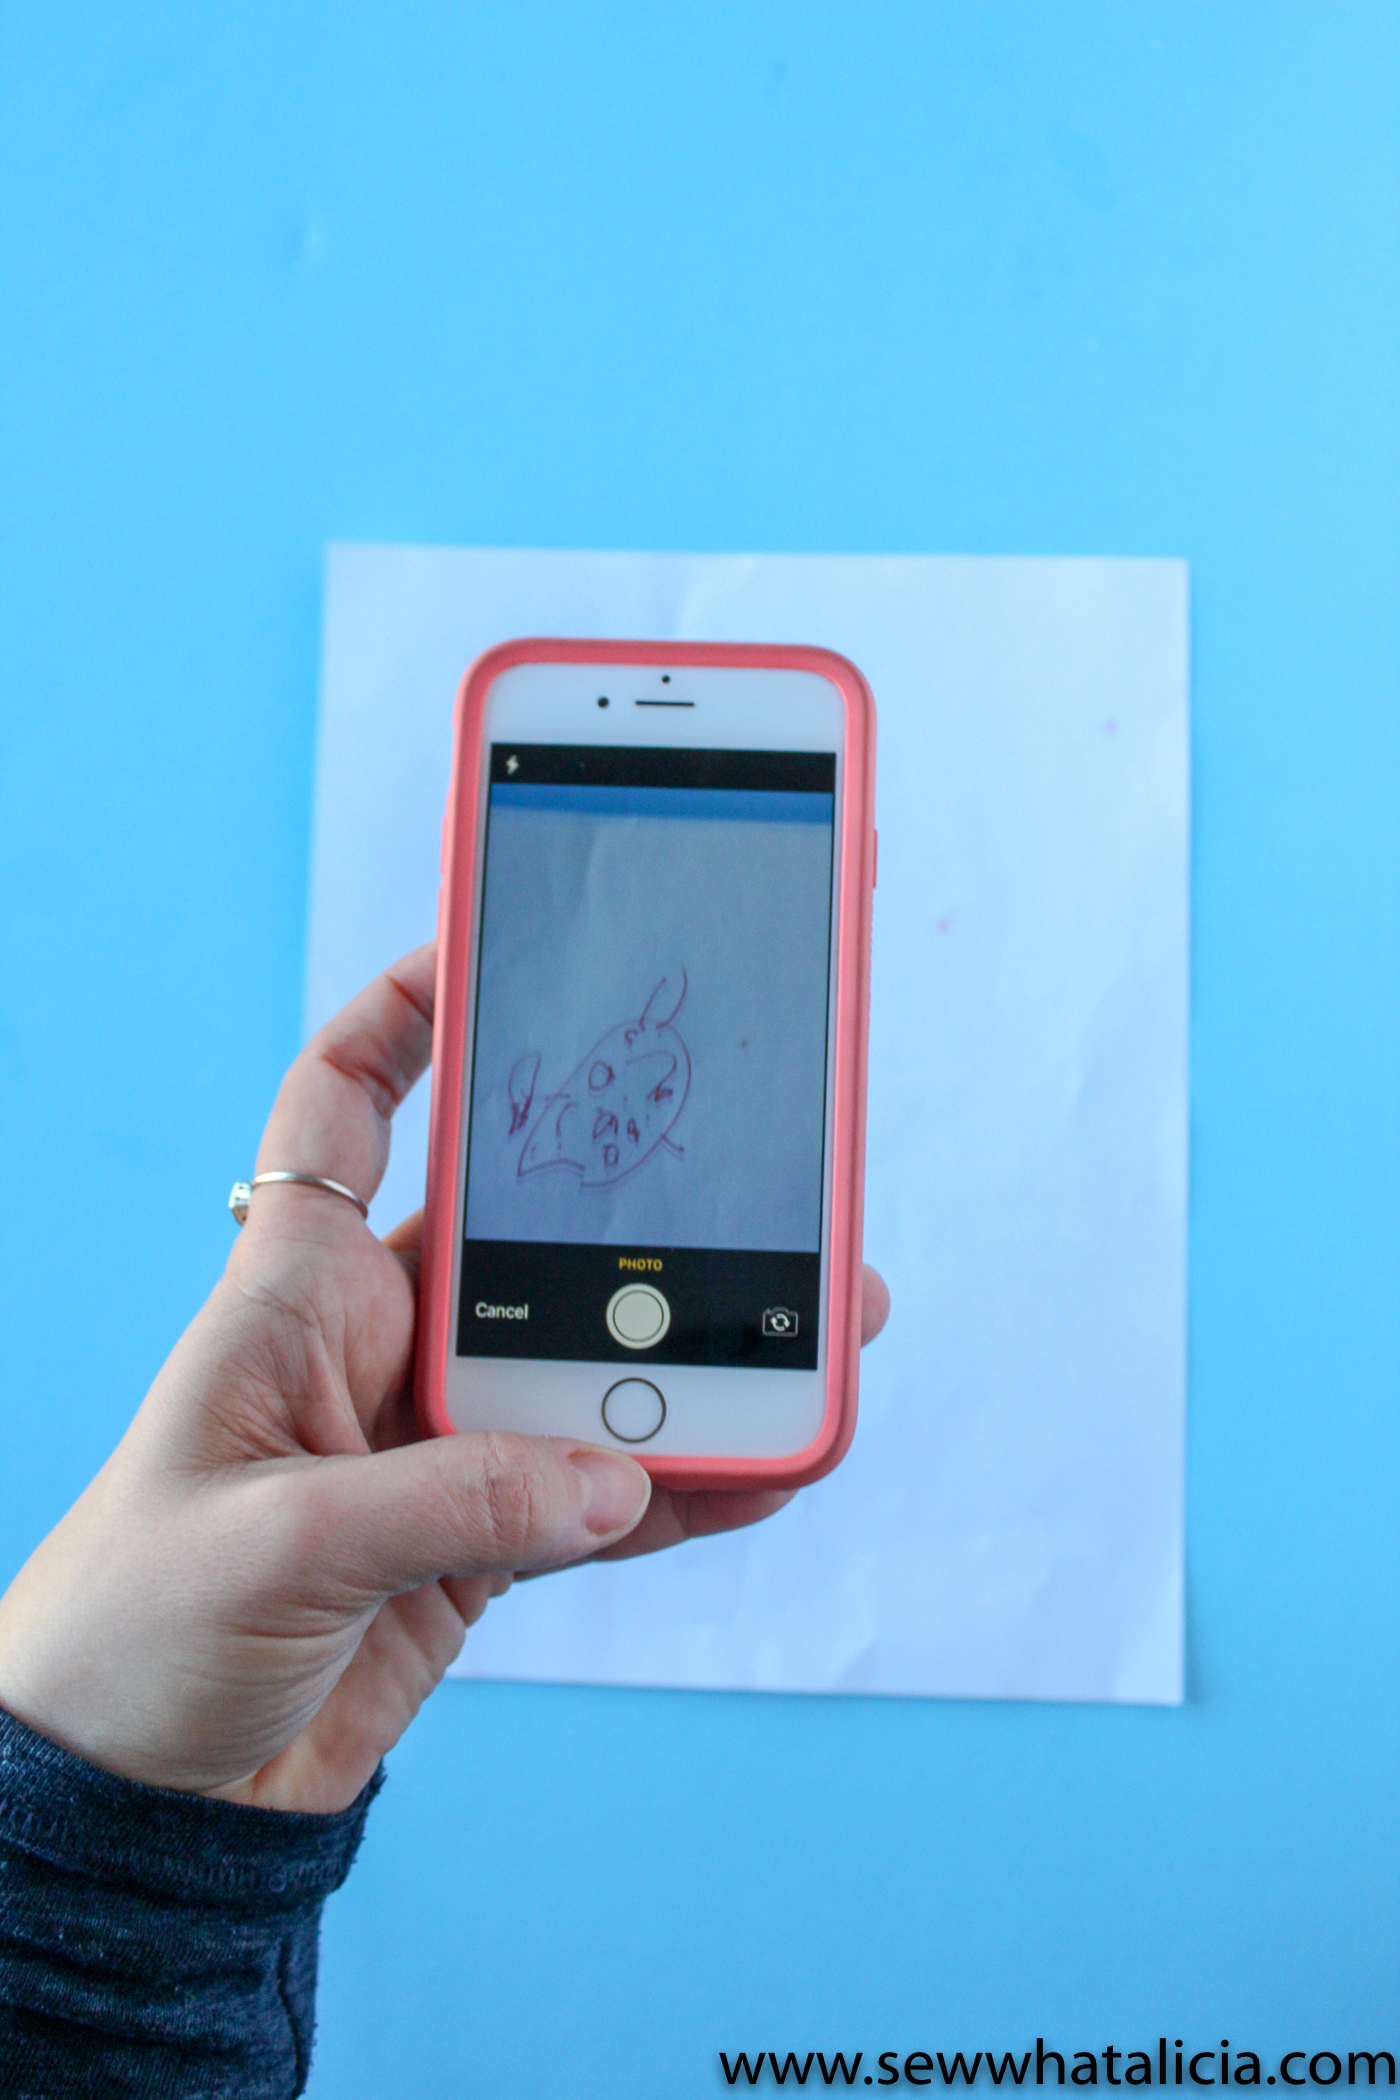 Using Cricut Apps to Design Sewing Projects - Sew What, Alicia?